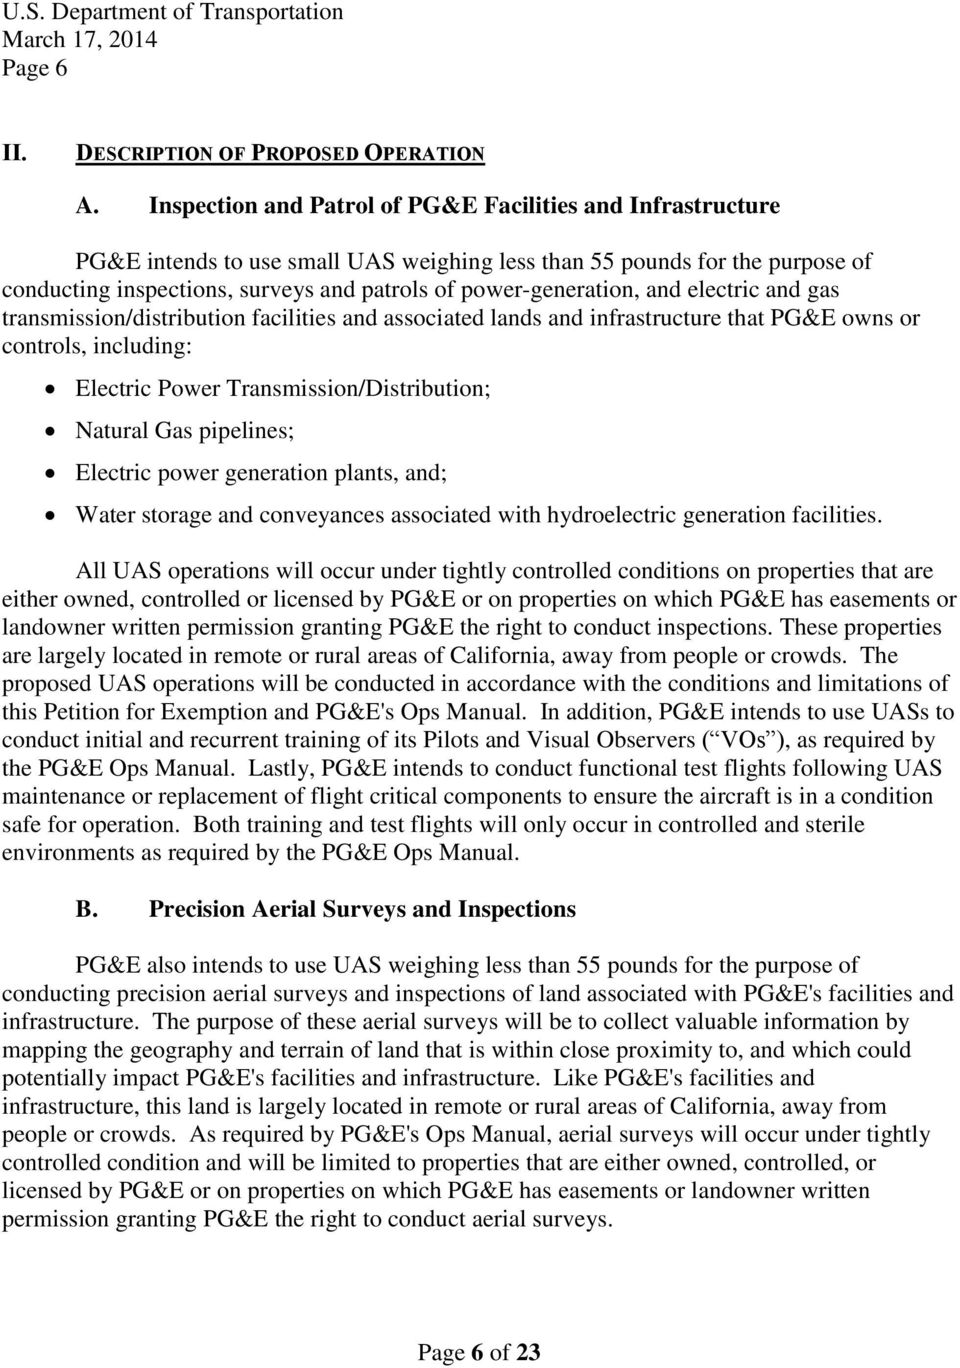 power-generation, and electric and gas transmission/distribution facilities and associated lands and infrastructure that PG&E owns or controls, including: Electric Power Transmission/Distribution;